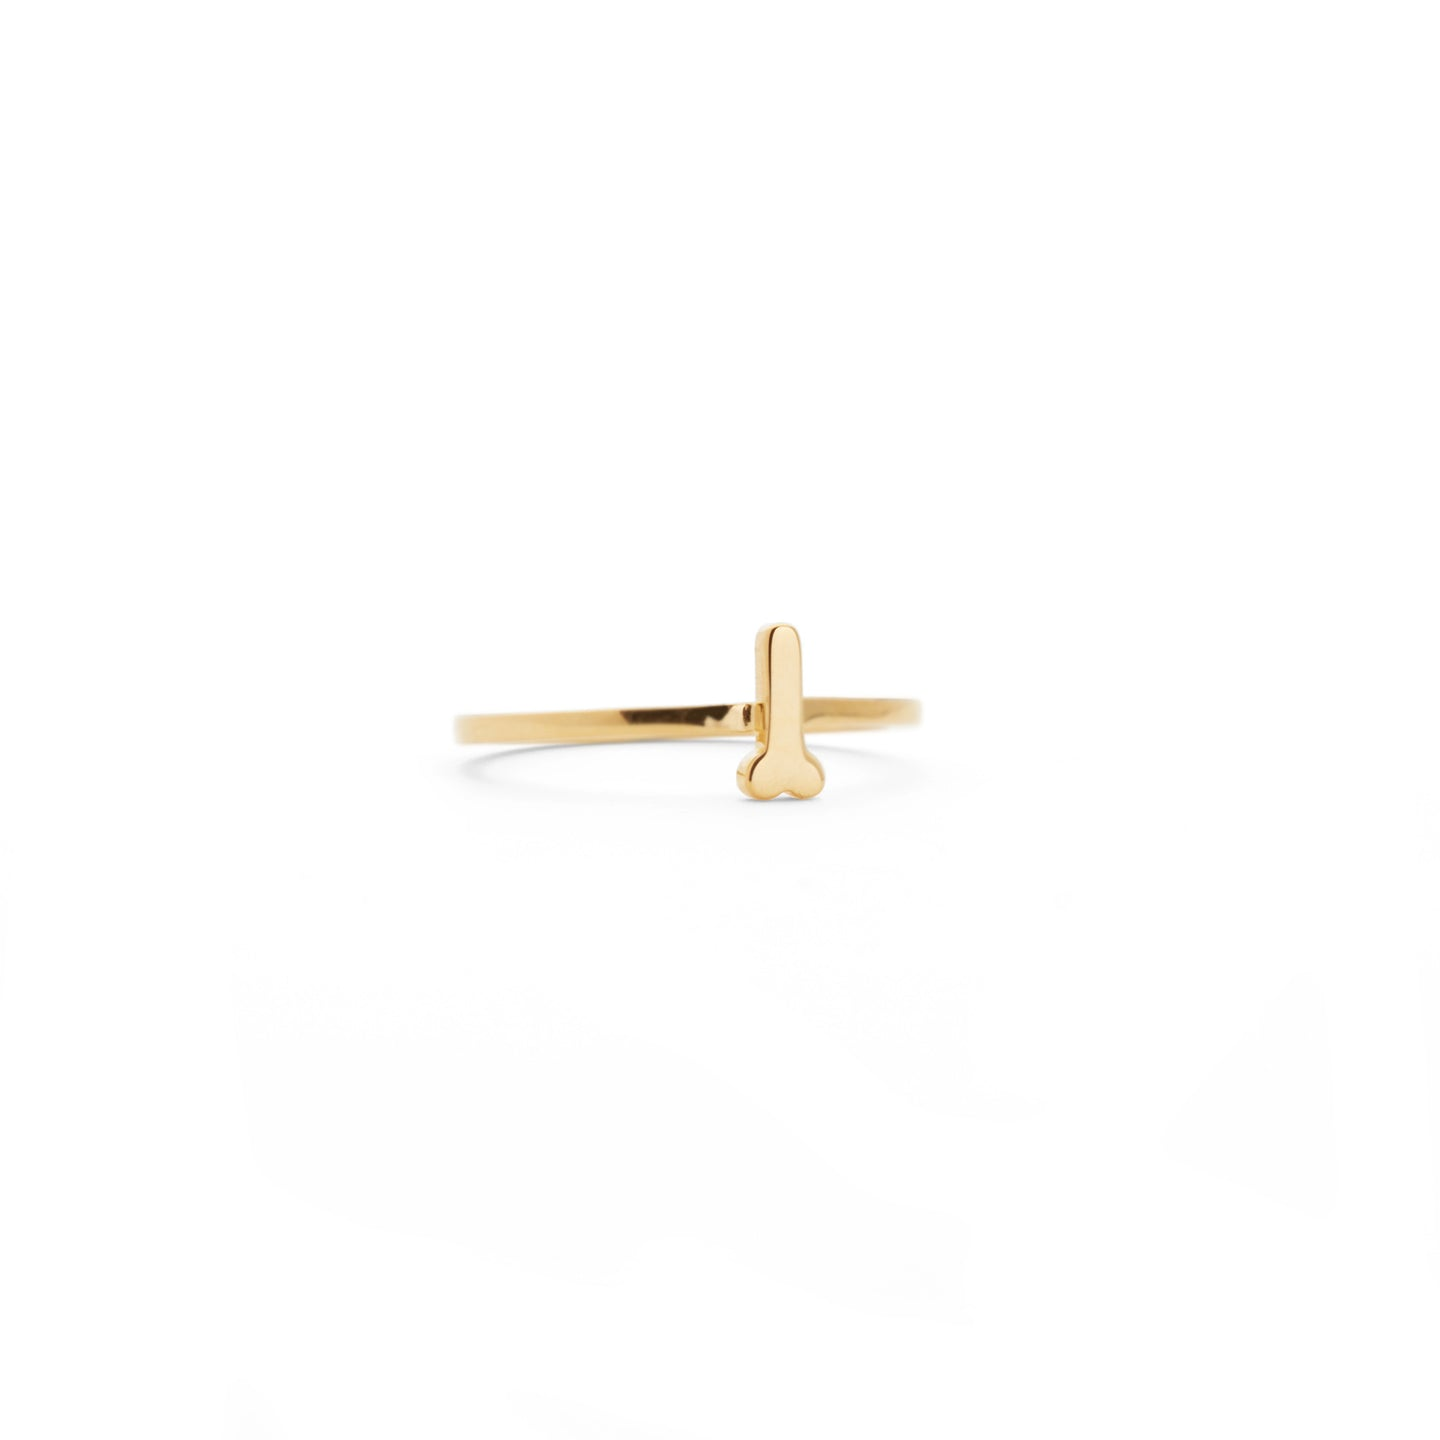 Coque Ring in Gold Vermeil